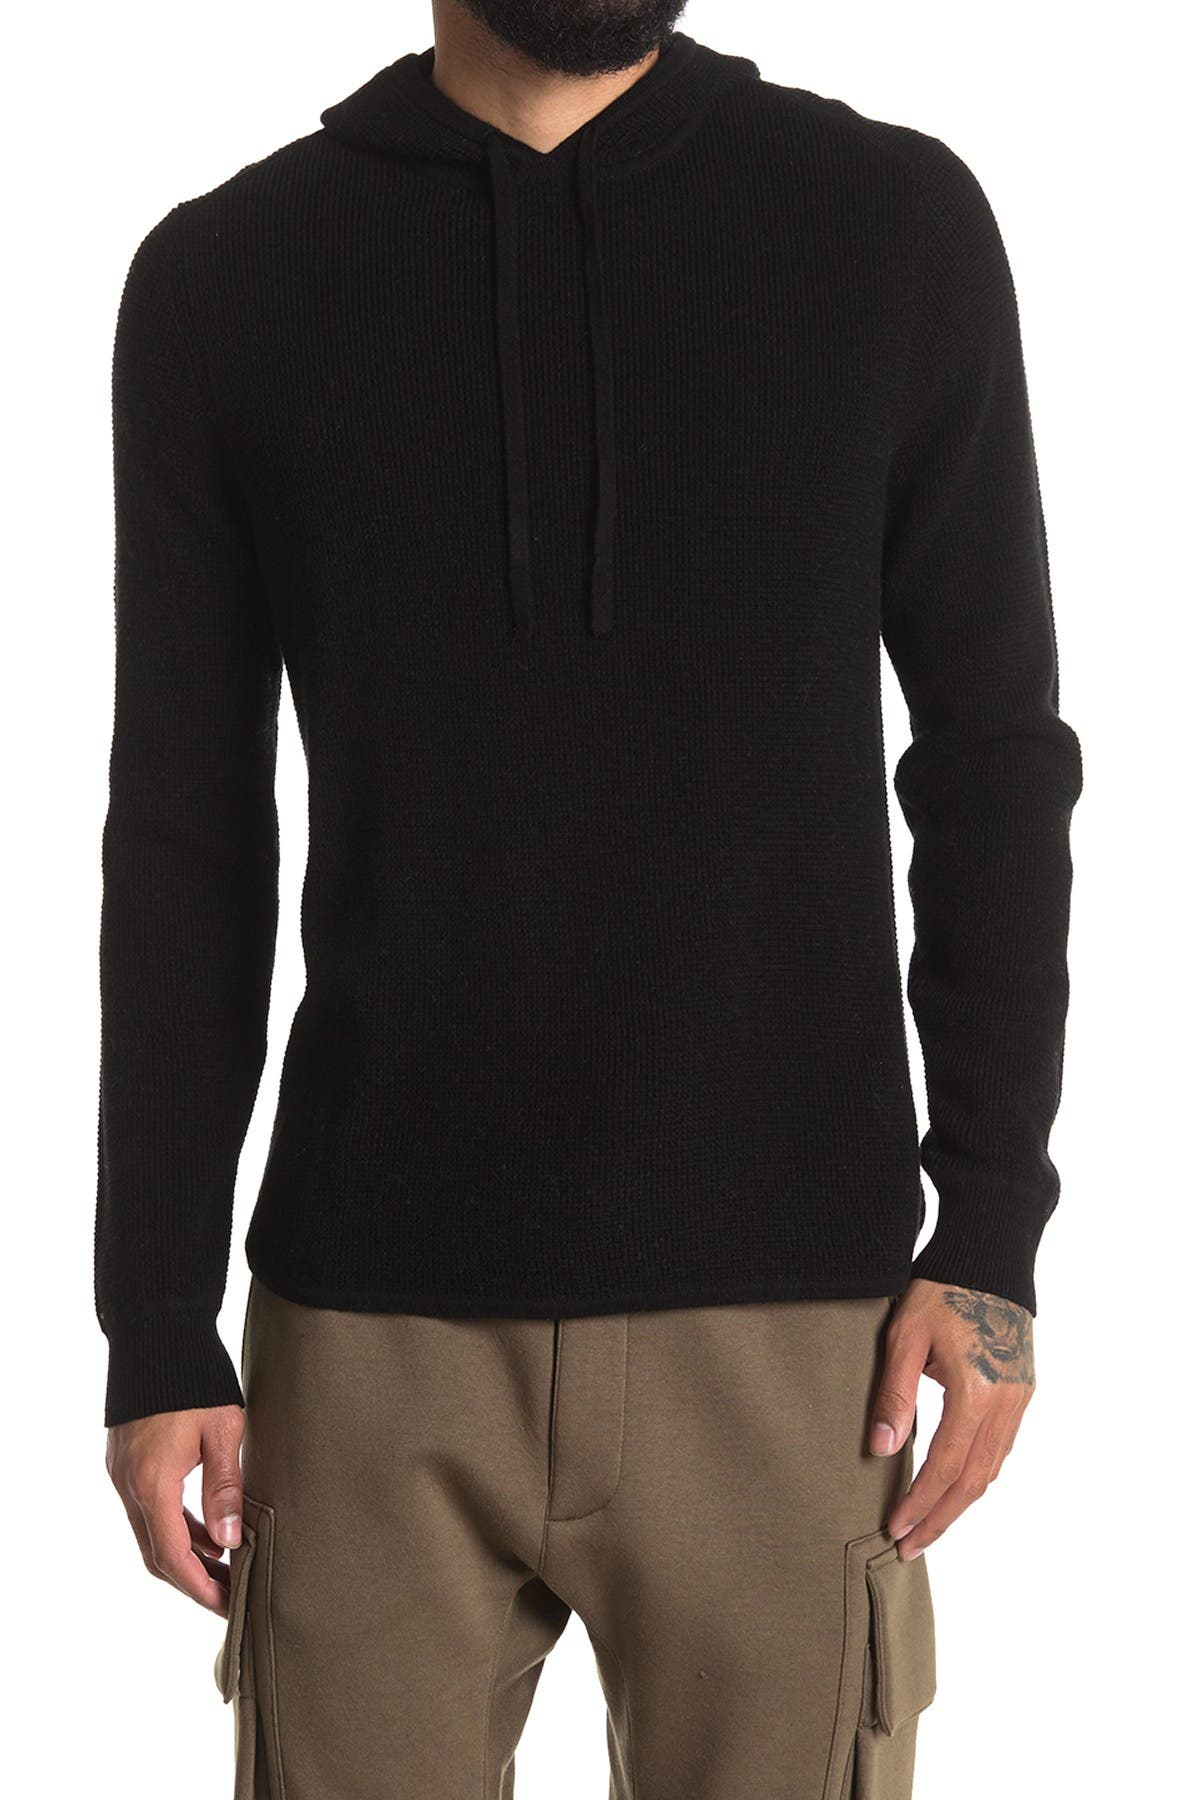 Image of AMICALE Cotton Cashmere Blend Thermal Hoodie